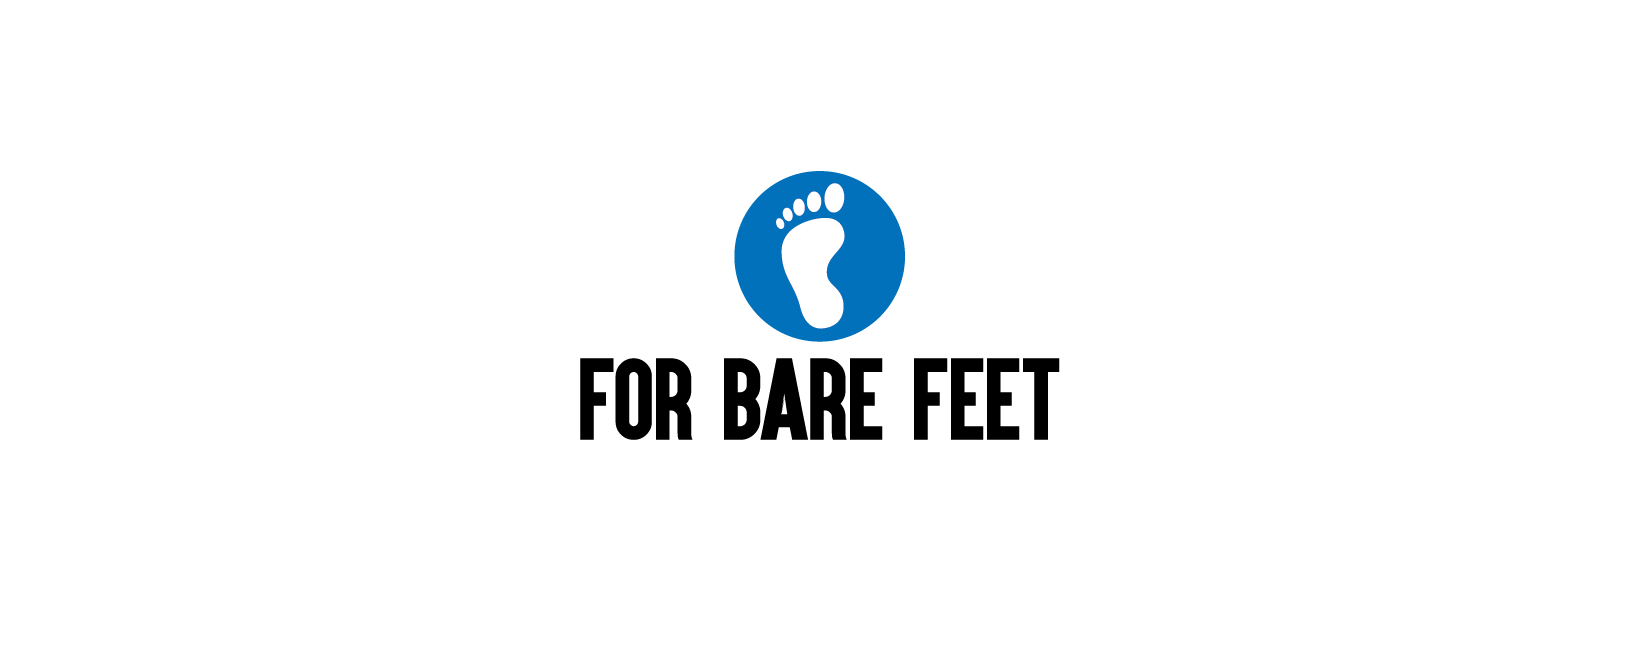 For Bare Feet Discount Code 2021